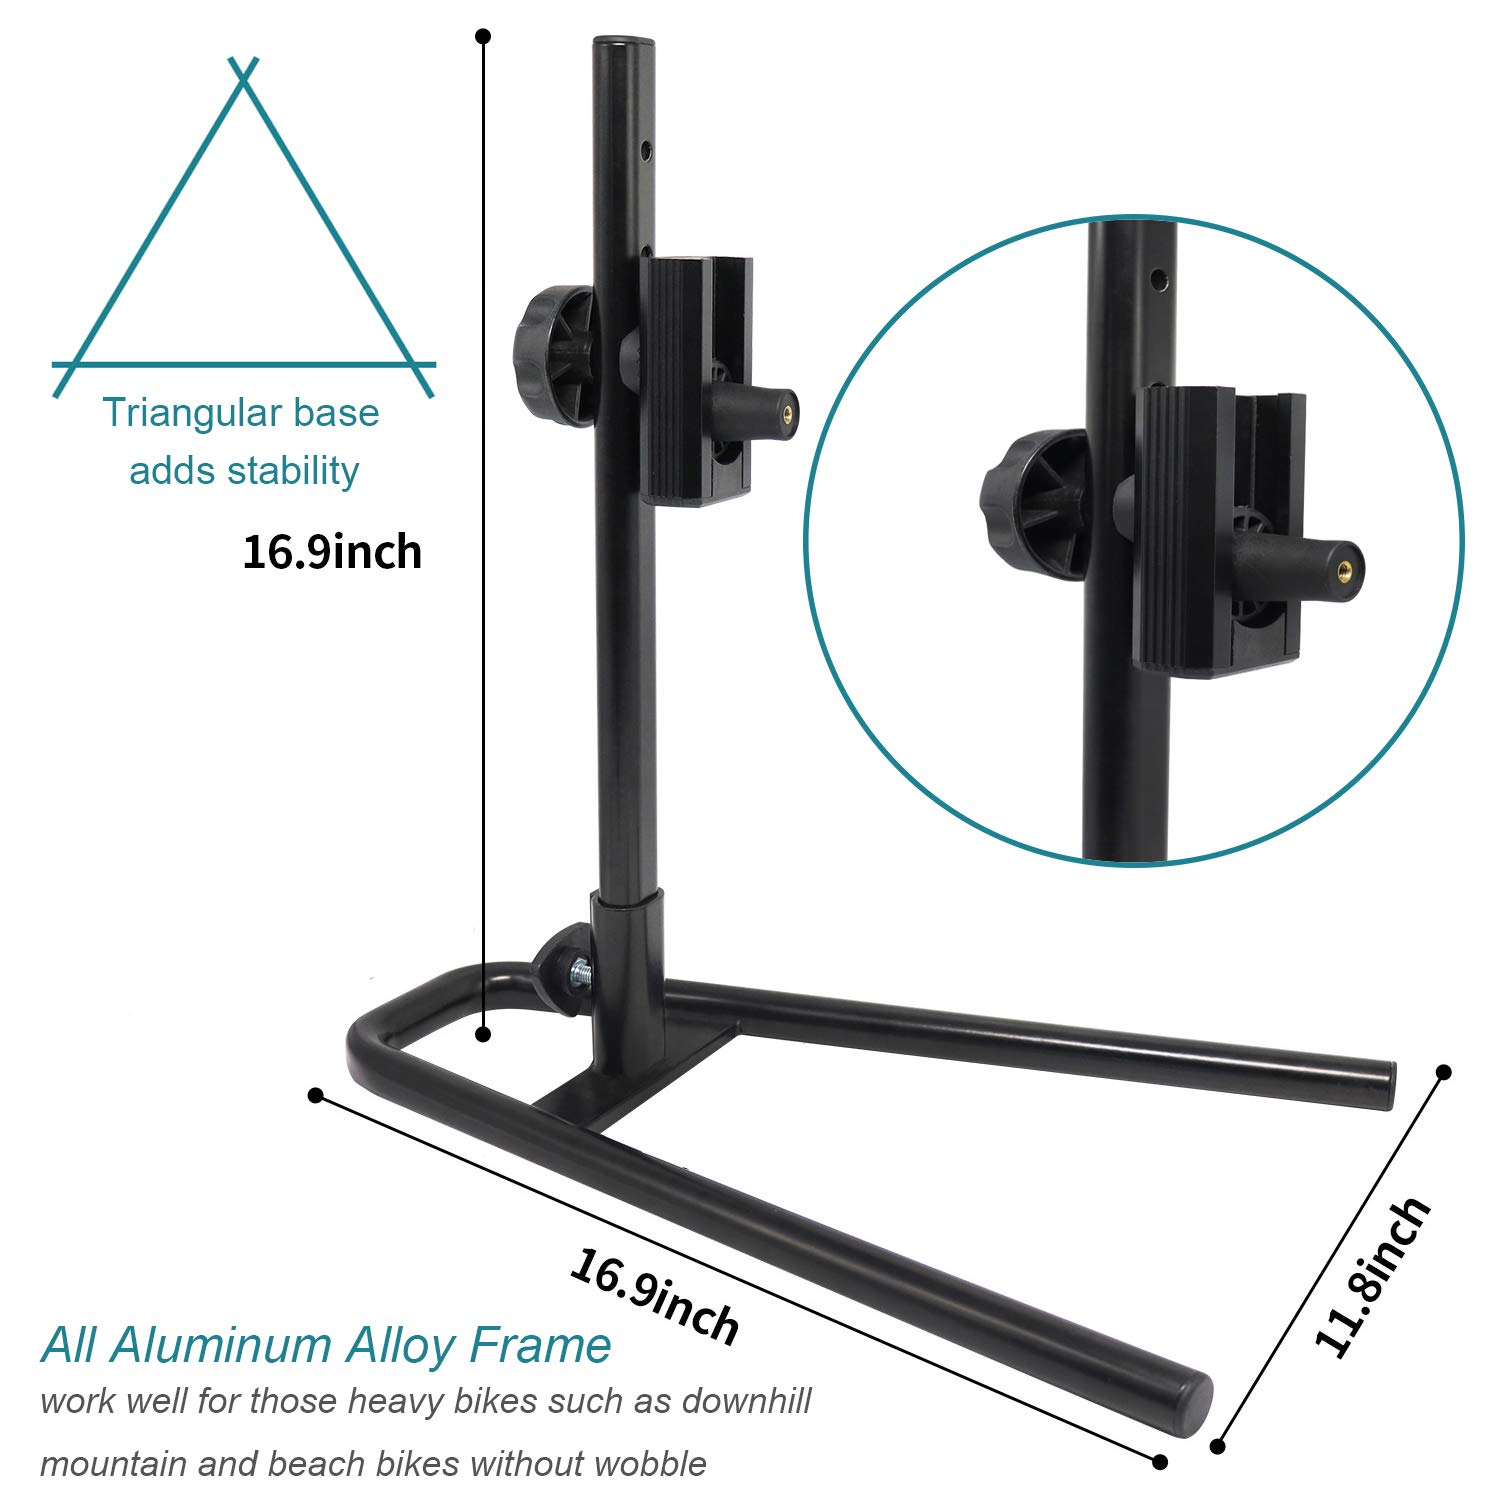 Sports Bike Stand Rack for Quick Release Front Wheels Adjustable Aluminium Alloy Bicycle Storage Floor Parking Rack Wheel Holder Fit 20 -29 Tire Mountain Bikes Road Bicycle Outdoor Indoor Home Garage